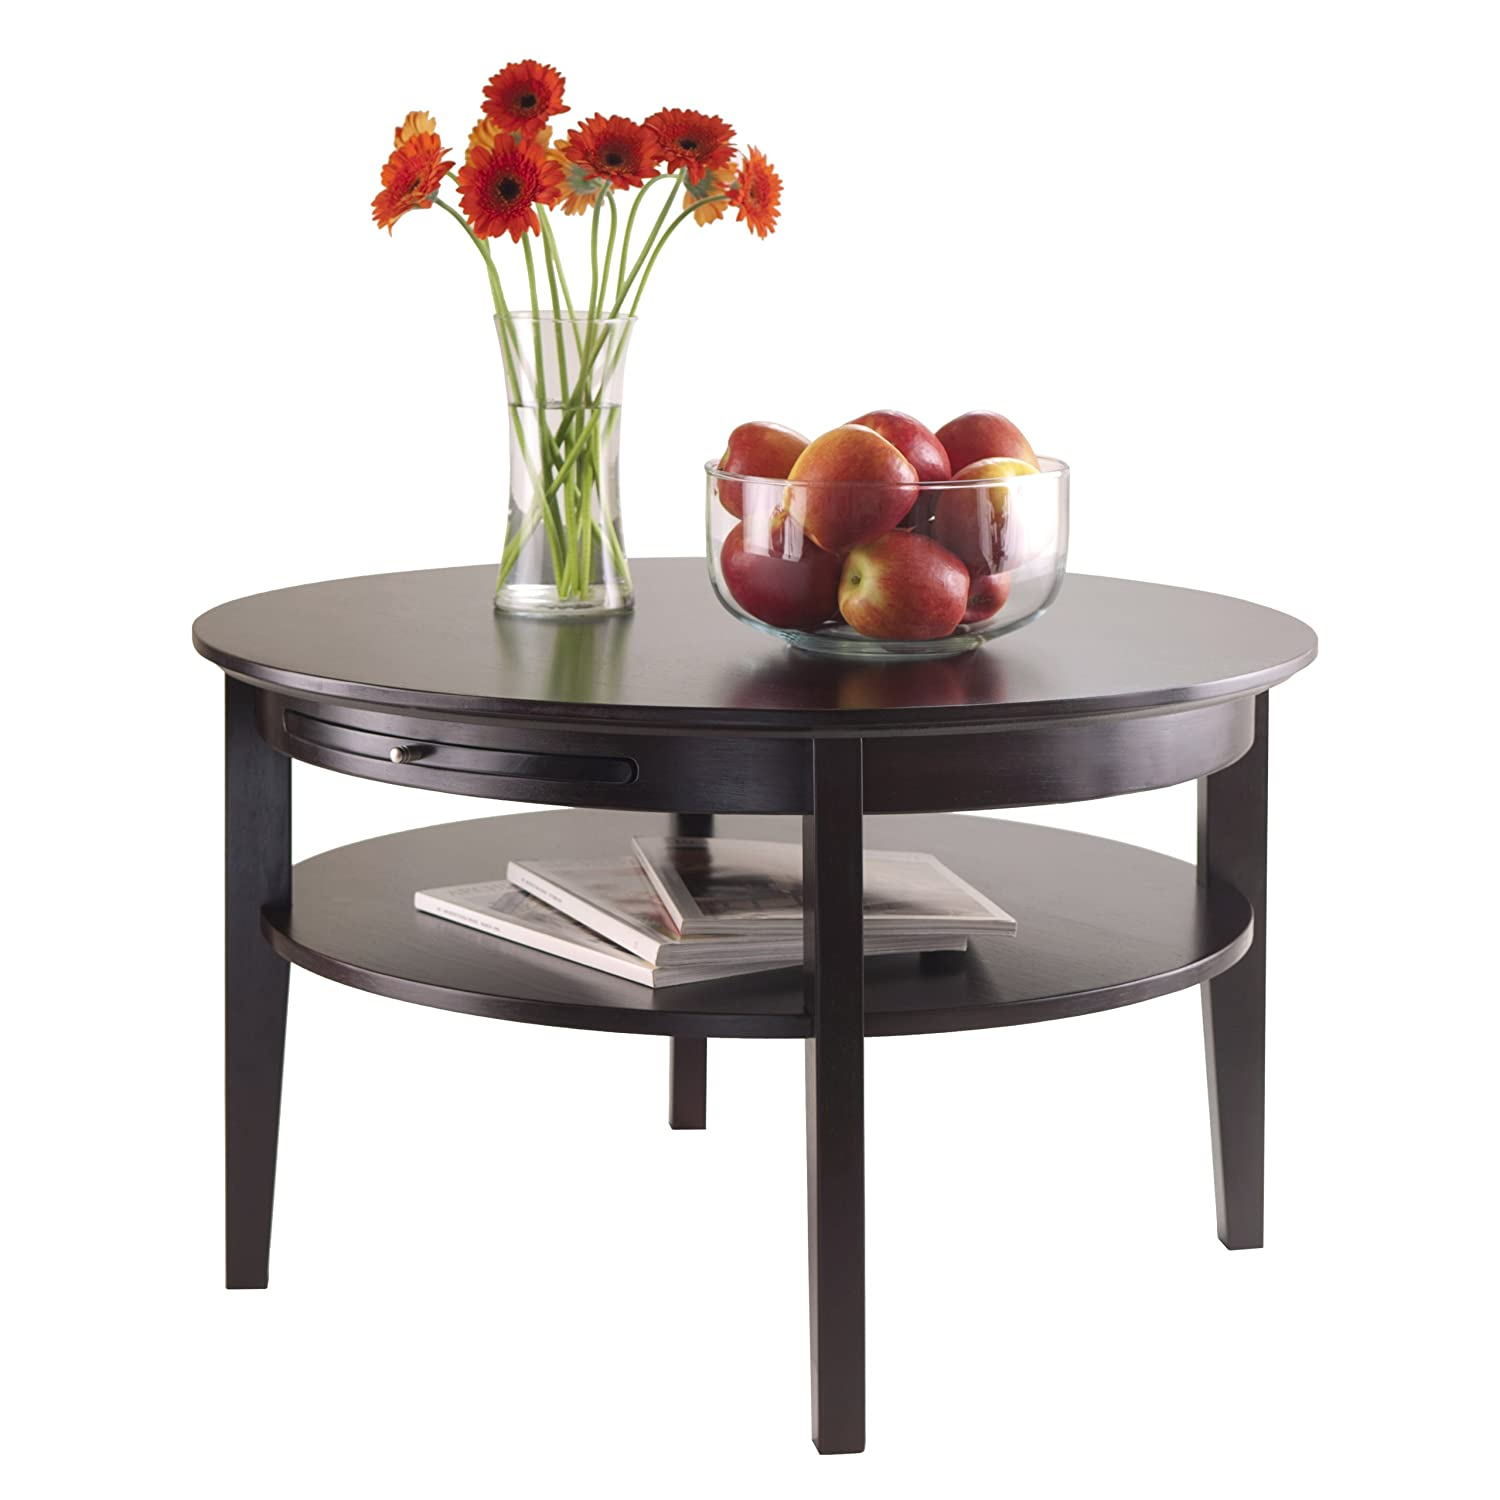 Amazon com  WINSOME Amelia Round Coffee Table with Pull Out Tray  Kitchen    DiningAmazon com  WINSOME Amelia Round Coffee Table with Pull Out Tray  . Round Living Room Tables. Home Design Ideas